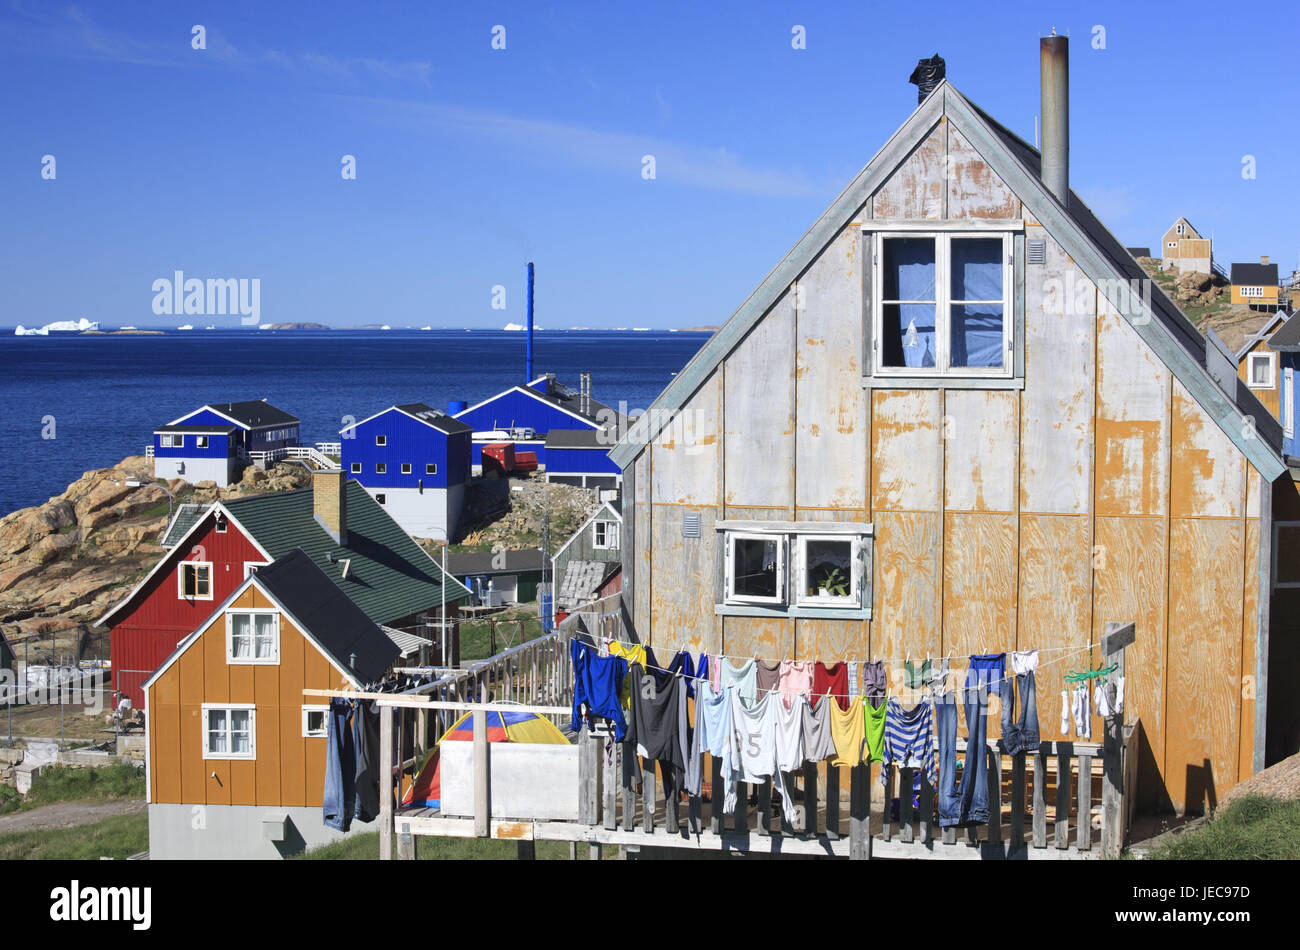 Greenland, Upernavik, residential houses, clothesline, clothes, North-Western Greenland, coast, town, water, the - Stock Image